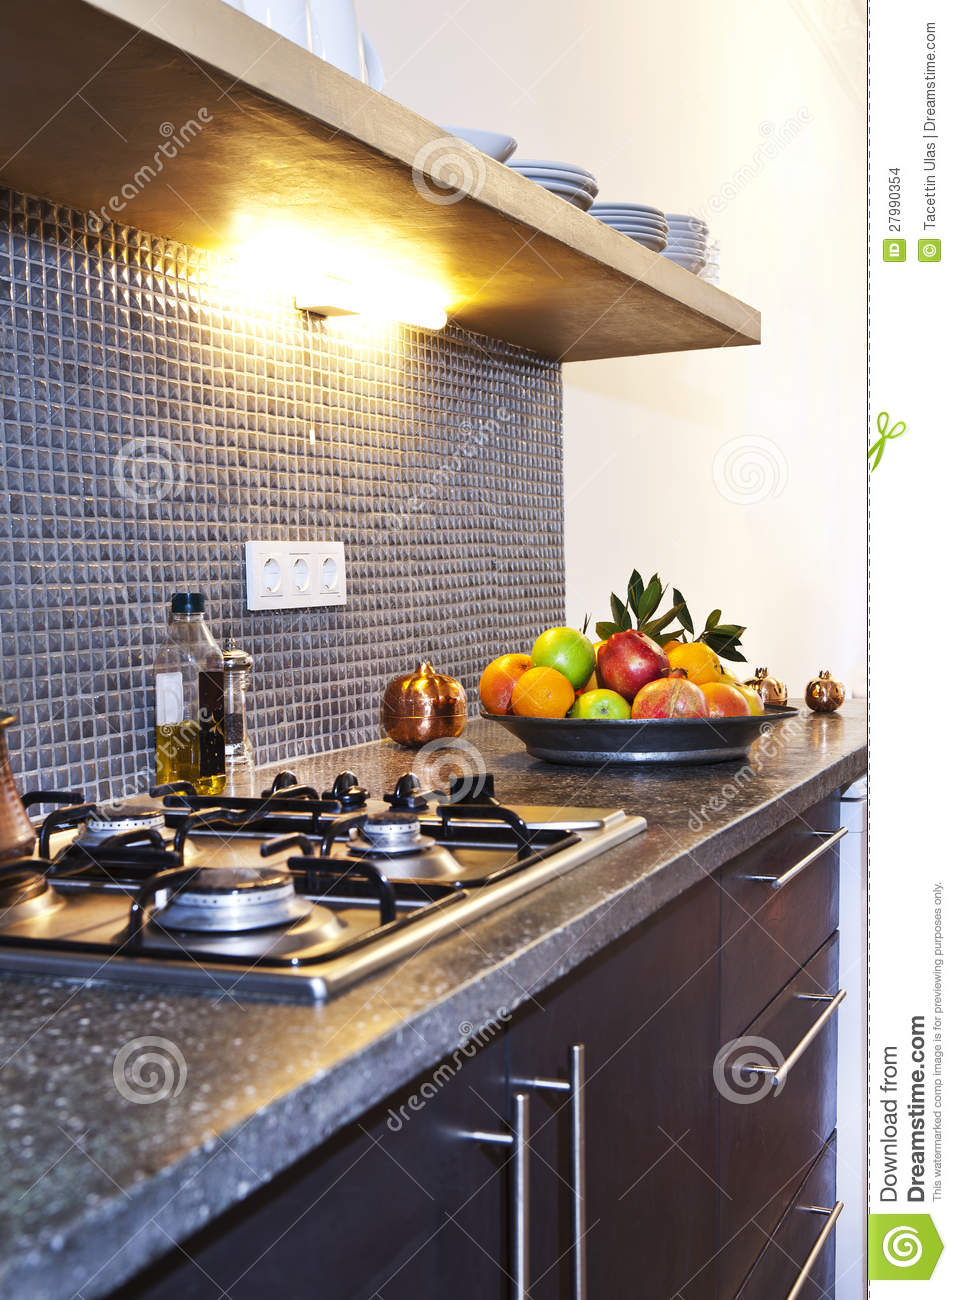 Kitchen setup stock images image 27990354 for Kitchen setup